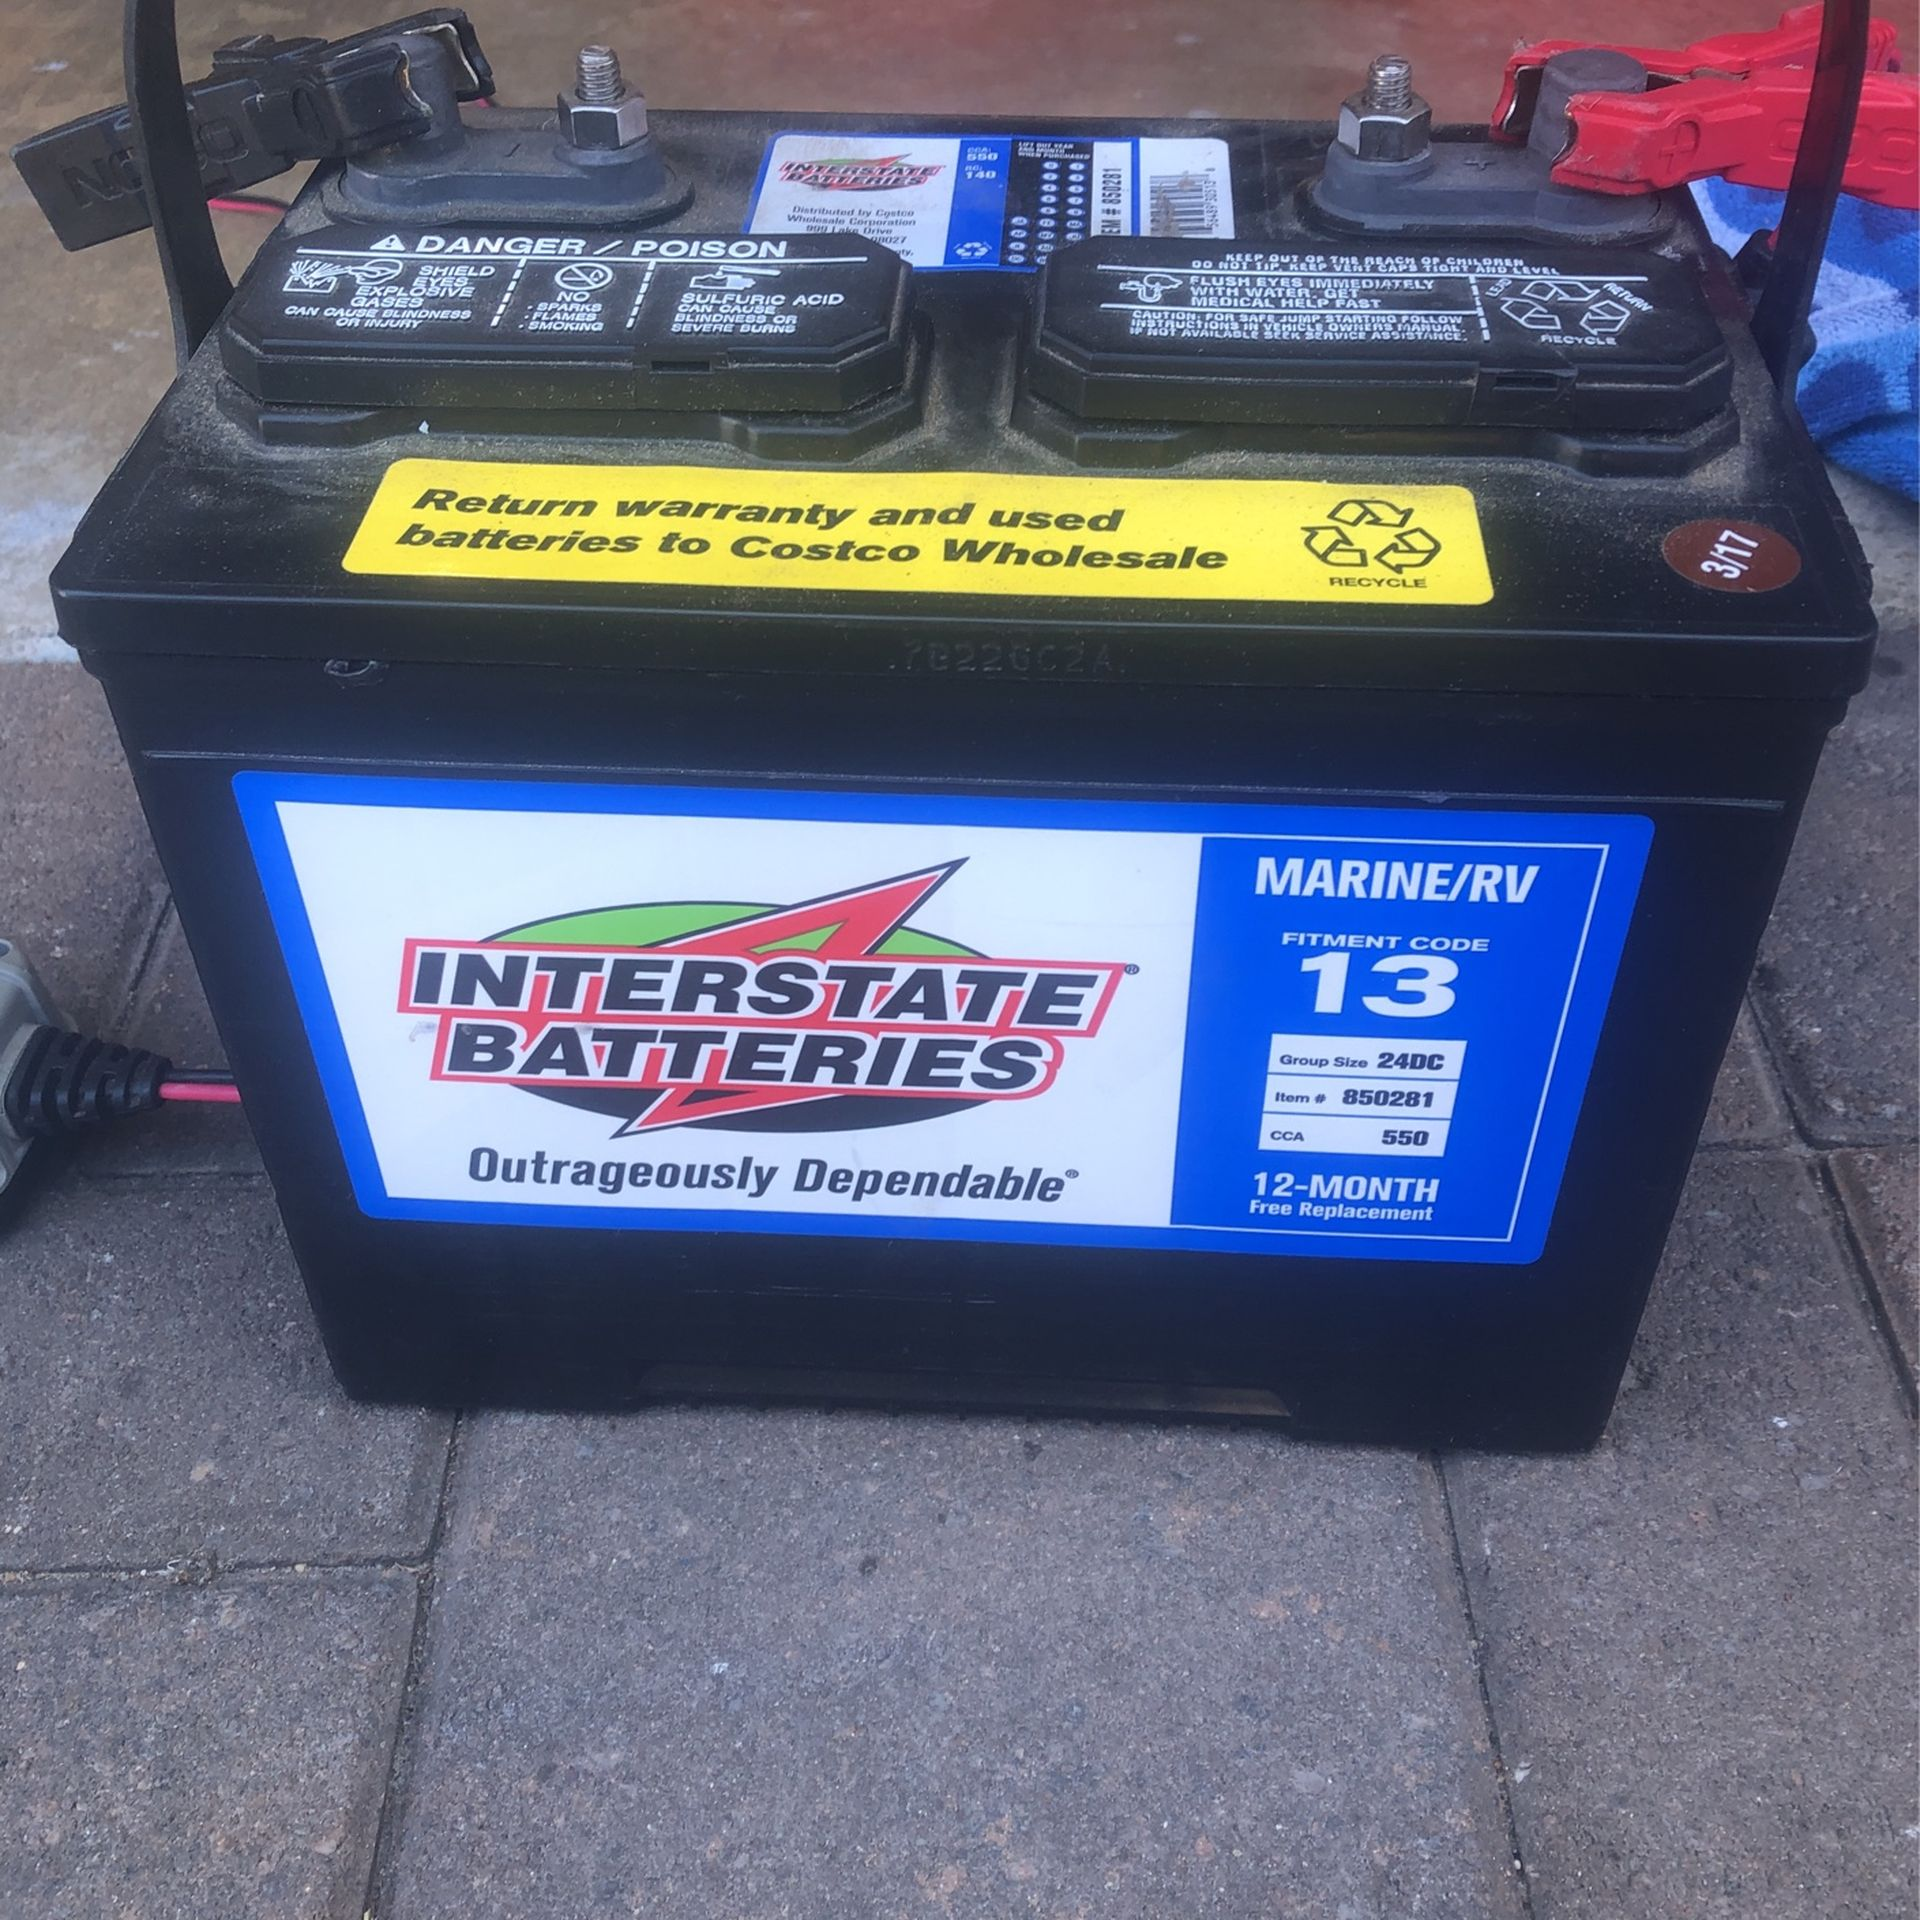 Marine/RV Battery - Lightly Used And Kept Charged - Battery Only